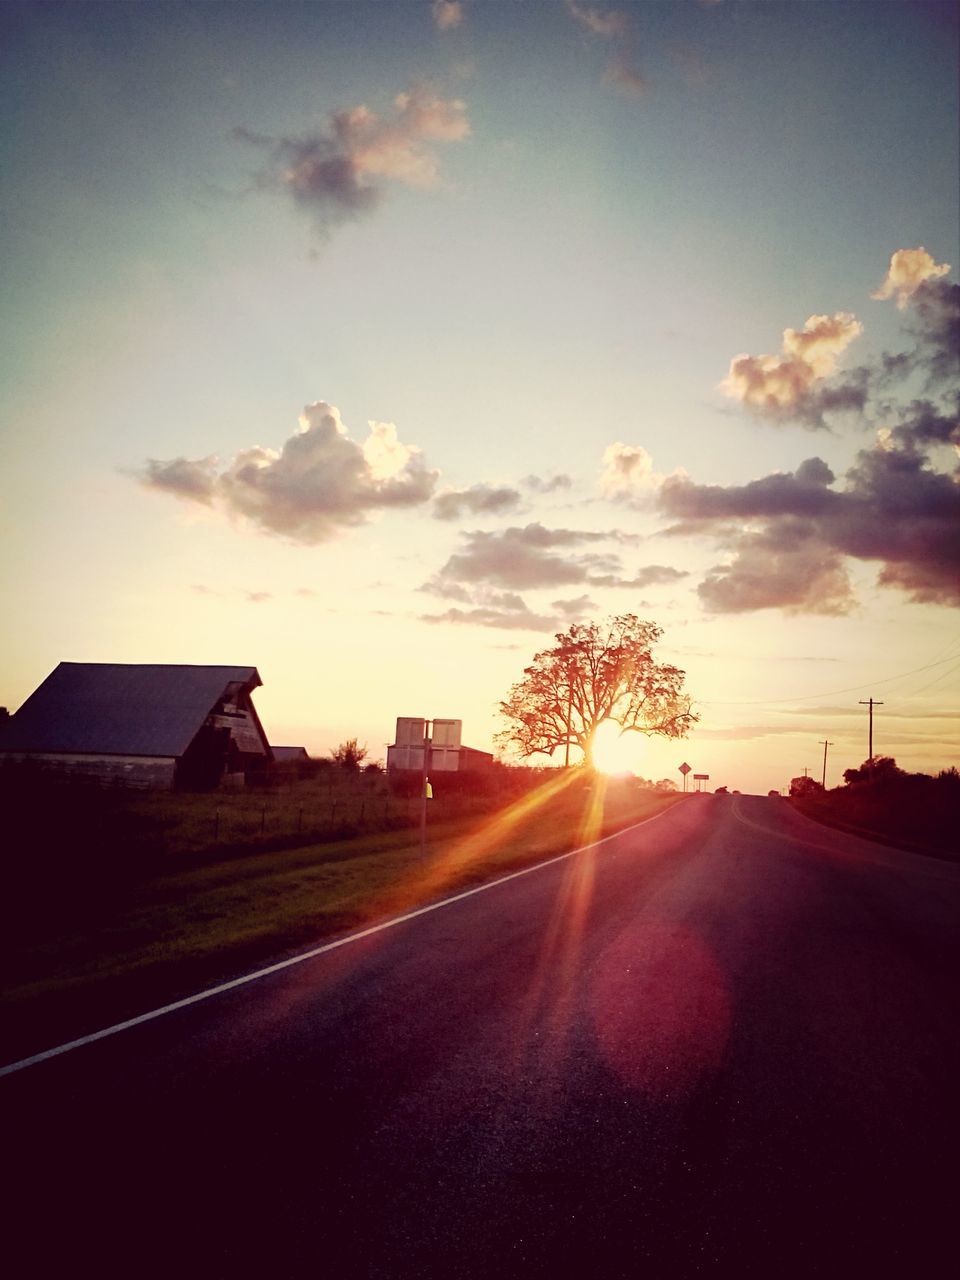 road, sky, street, transportation, sun, sunbeam, sunset, the way forward, car, lens flare, sunlight, no people, house, outdoors, silhouette, built structure, cloud - sky, nature, scenics, day, building exterior, architecture, tree